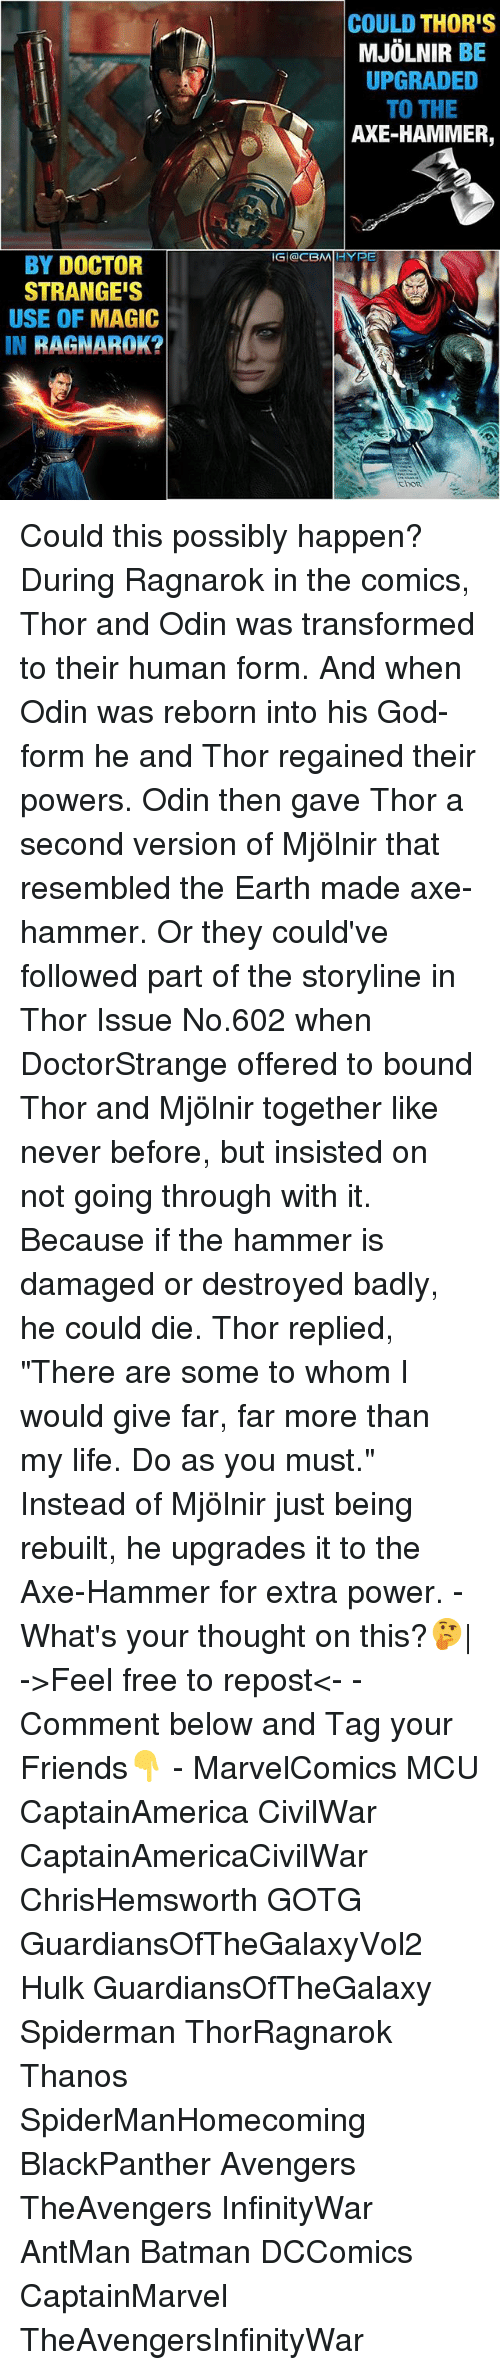 """Mjølnir: BY DOCTOR  STRANGE'S  USE OF MAGIC  IN  RAGNAROK?  COULD THOR'S  MJOLNIR  BE  UPGRADED  TO THE  AXE-HAMMER,  IGI OCBMIIIHYPE Could this possibly happen? During Ragnarok in the comics, Thor and Odin was transformed to their human form. And when Odin was reborn into his God-form he and Thor regained their powers. Odin then gave Thor a second version of Mjölnir that resembled the Earth made axe-hammer. Or they could've followed part of the storyline in Thor Issue No.602 when DoctorStrange offered to bound Thor and Mjölnir together like never before, but insisted on not going through with it. Because if the hammer is damaged or destroyed badly, he could die. Thor replied, """"There are some to whom I would give far, far more than my life. Do as you must."""" Instead of Mjölnir just being rebuilt, he upgrades it to the Axe-Hammer for extra power. - What's your thought on this?🤔